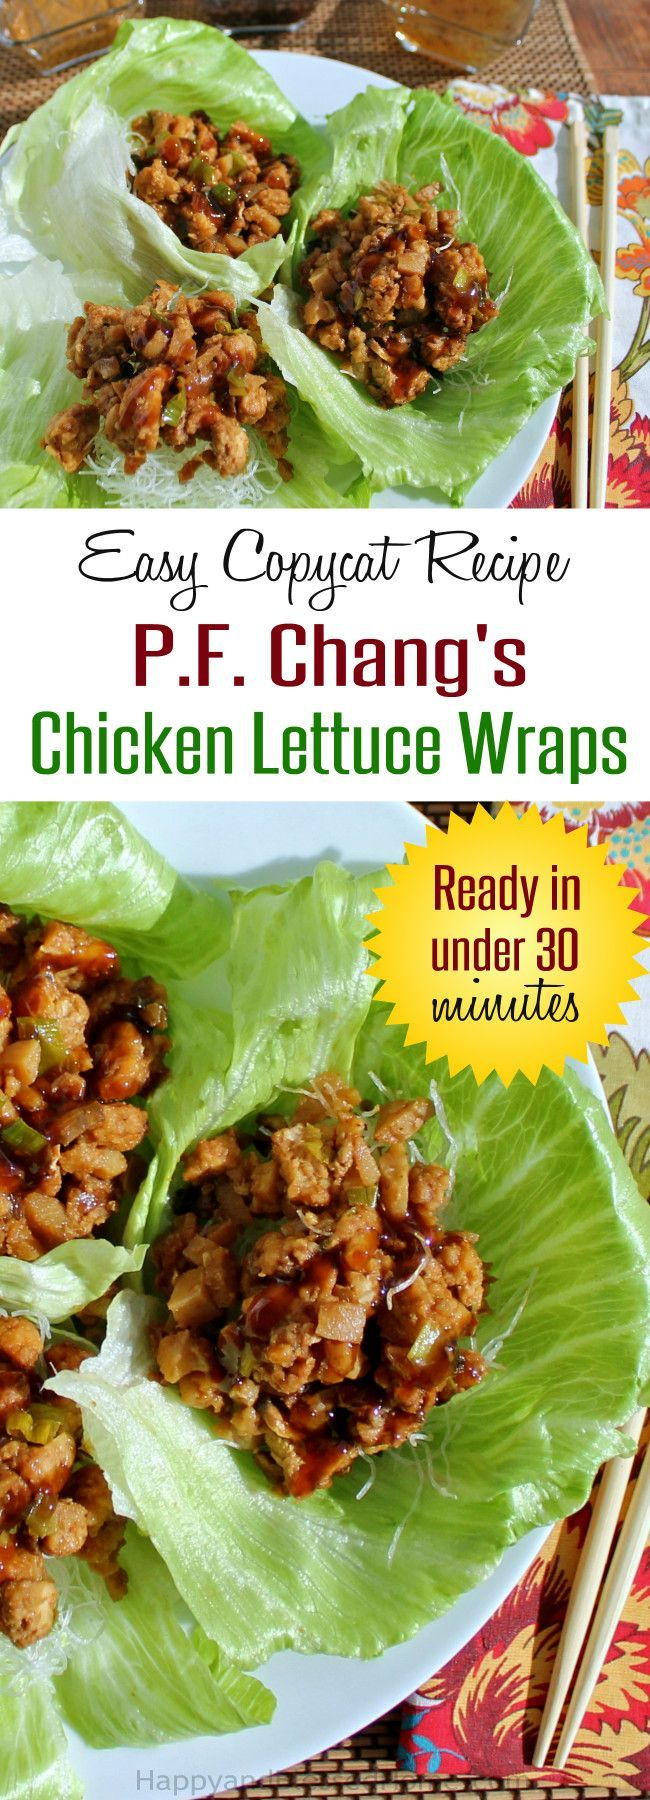 Easy Copycat Recipe for PF Chang's Chicken Lettuce Wraps Ready in under 30 Minutes by HappyandBlessedHome.com | appetizer | snack | #BackYourSnack #ad #cbias | Chicken Side Dish | Easy Recipe | Party Food | Holiday Entertaining